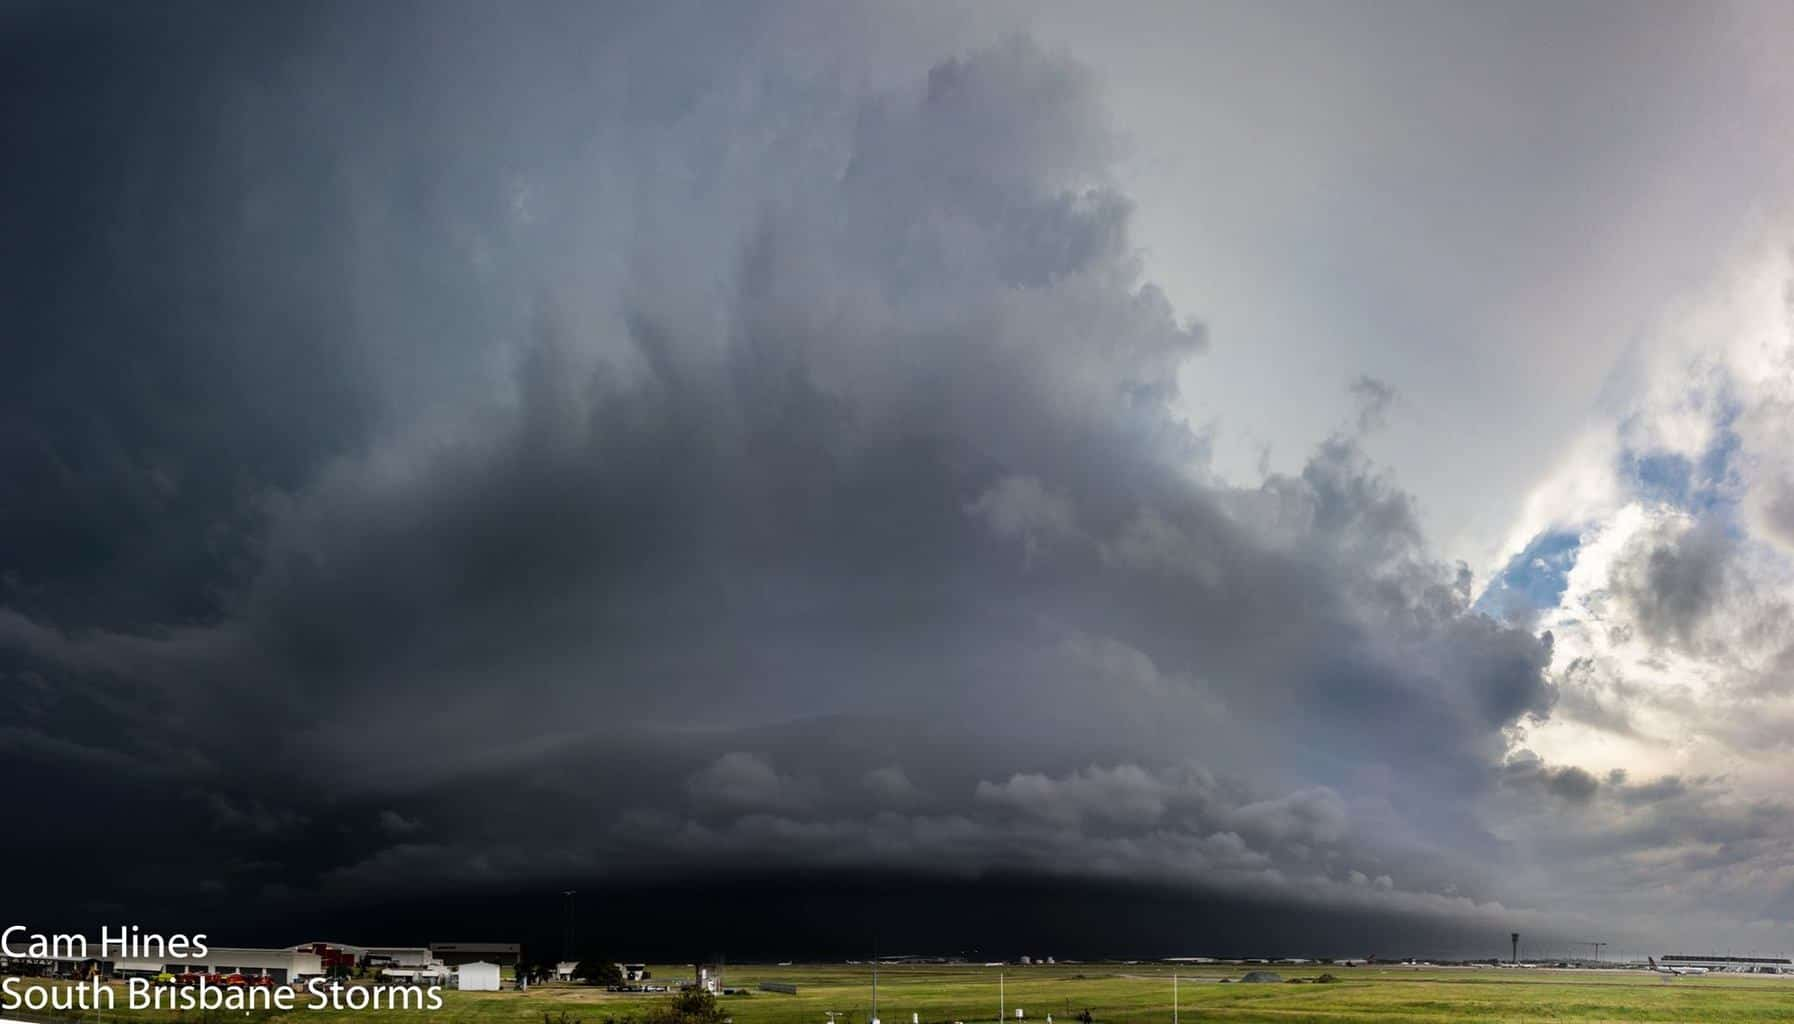 Large and dangerous HP supercell approaching Brisbane Airport, Australia last Sunday afternoon. This storm caused some significant damage around the suburbs of Brisbane which is a city of over 2 million people.